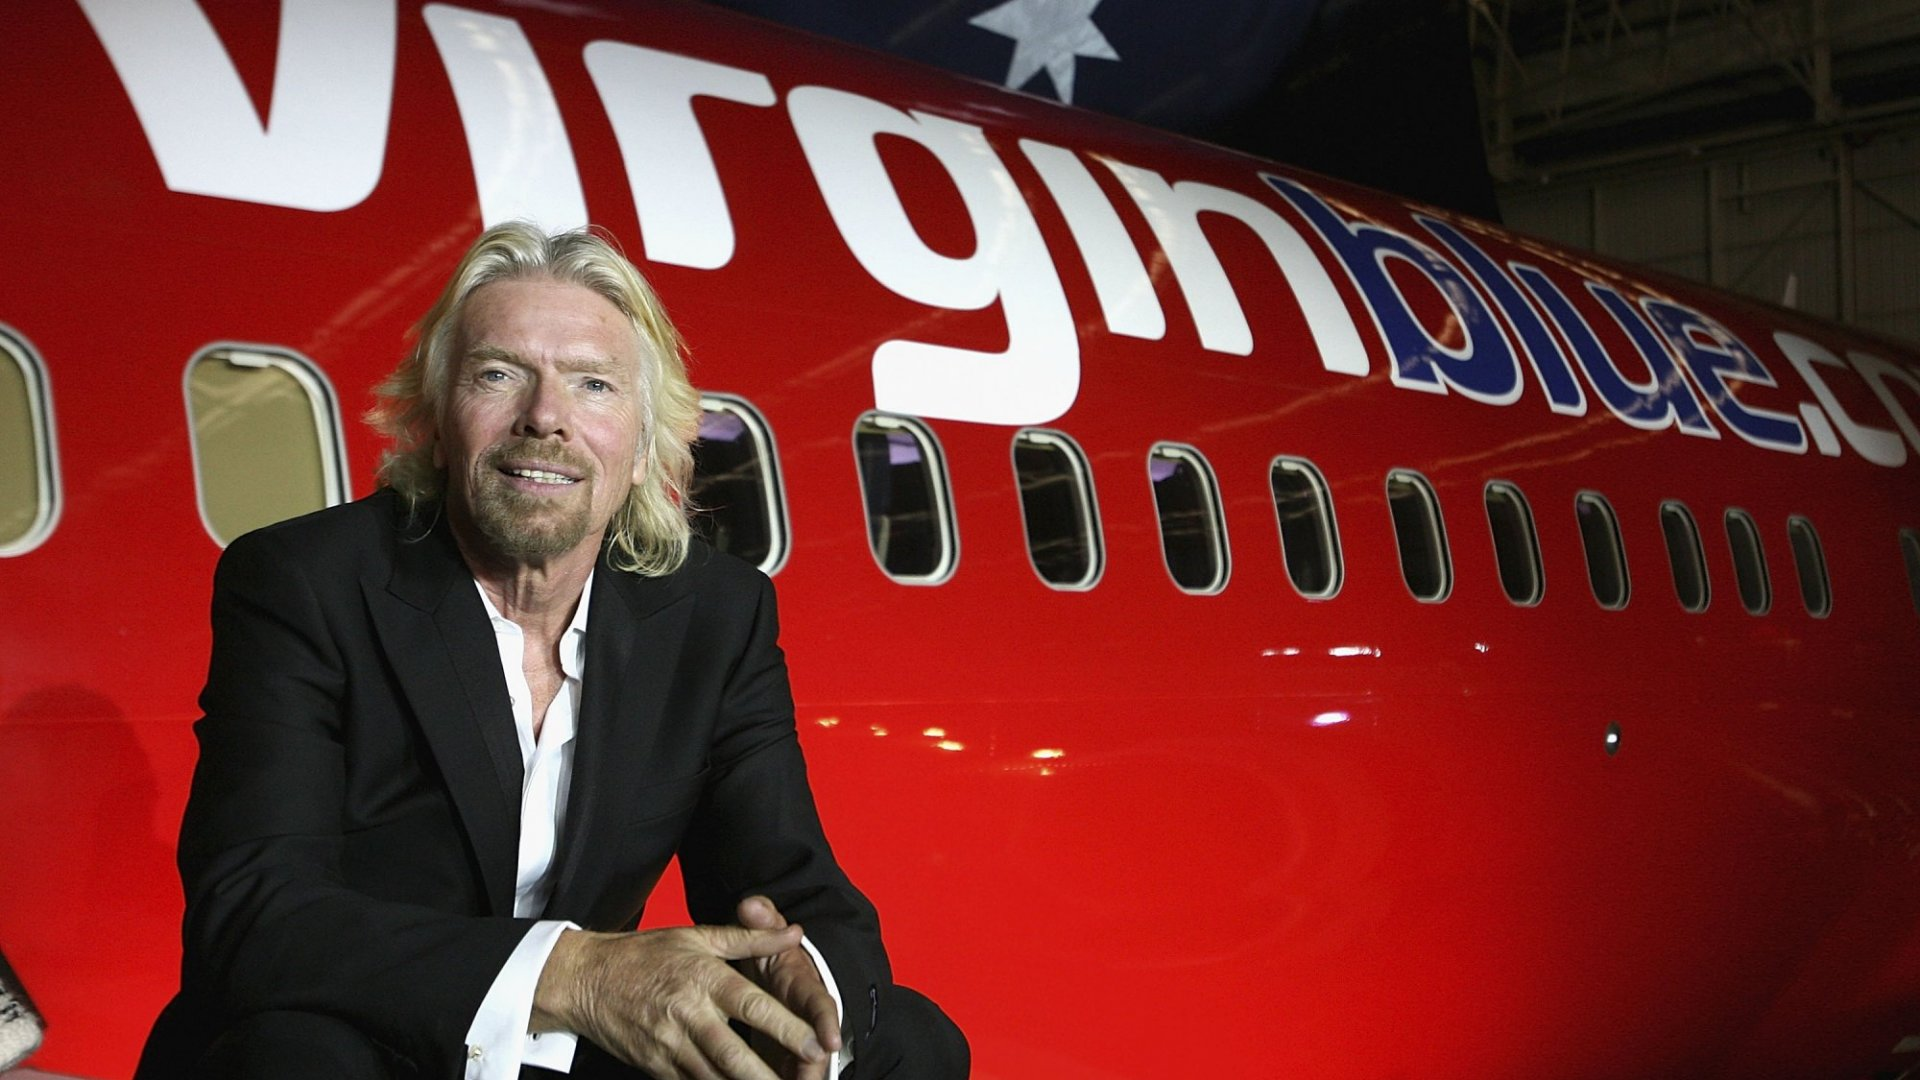 CEO  Branding Deconstructed: How Branson, Zuckerberg, Trump and Others Construct Their Online Image